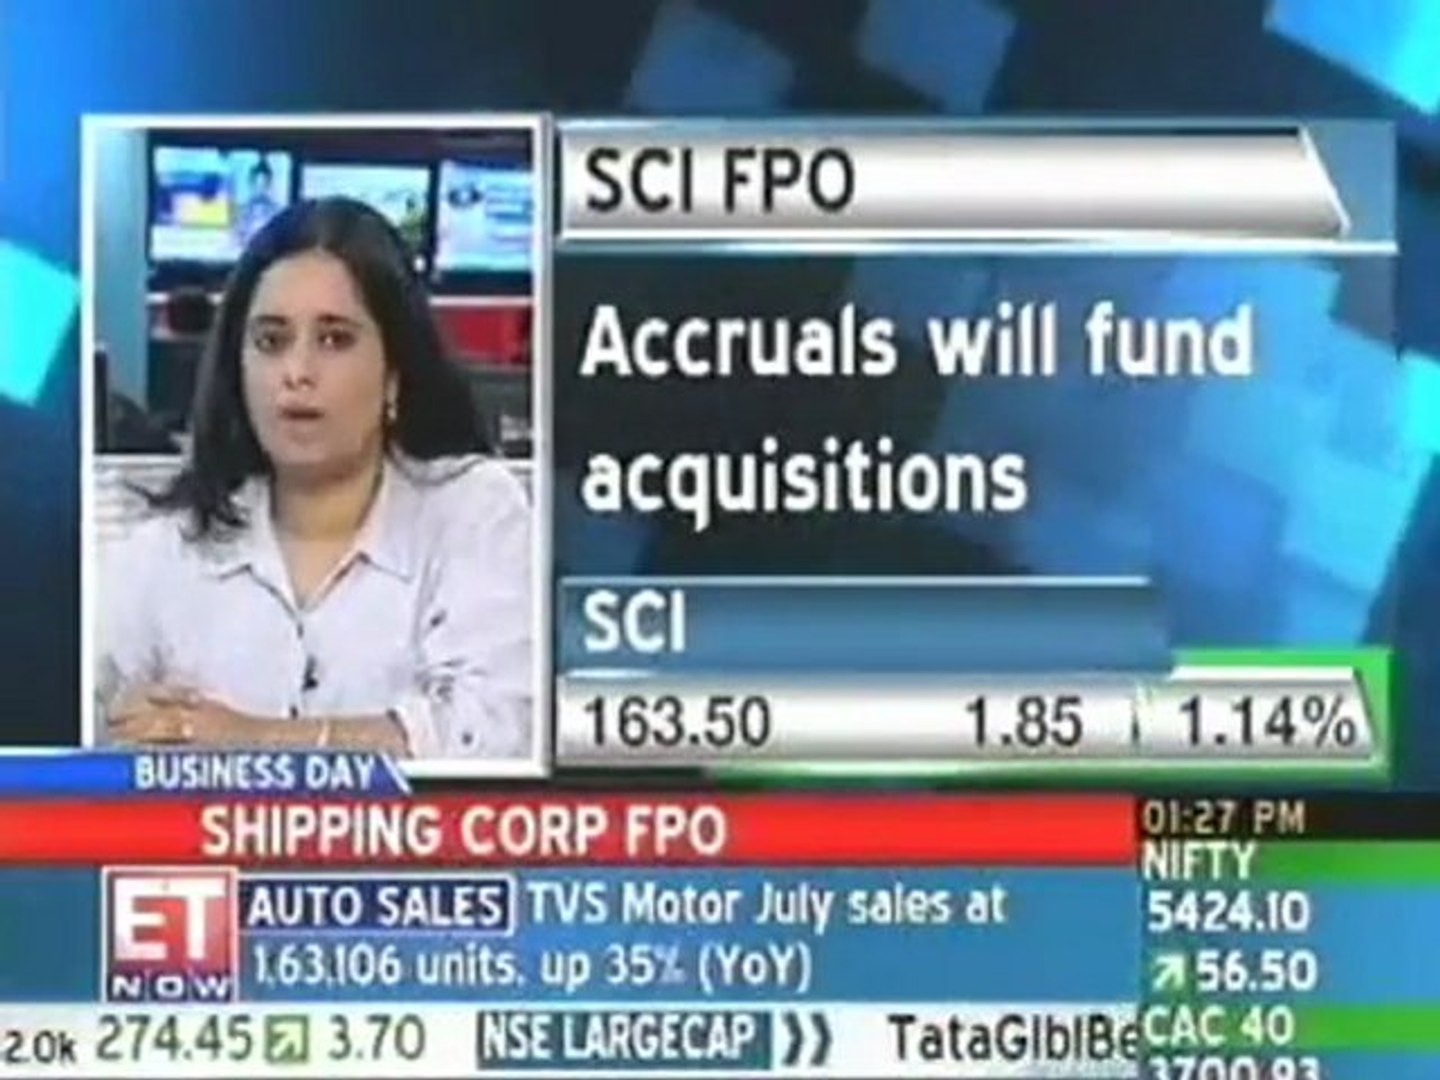 Shipping Corporation of India to open FPO